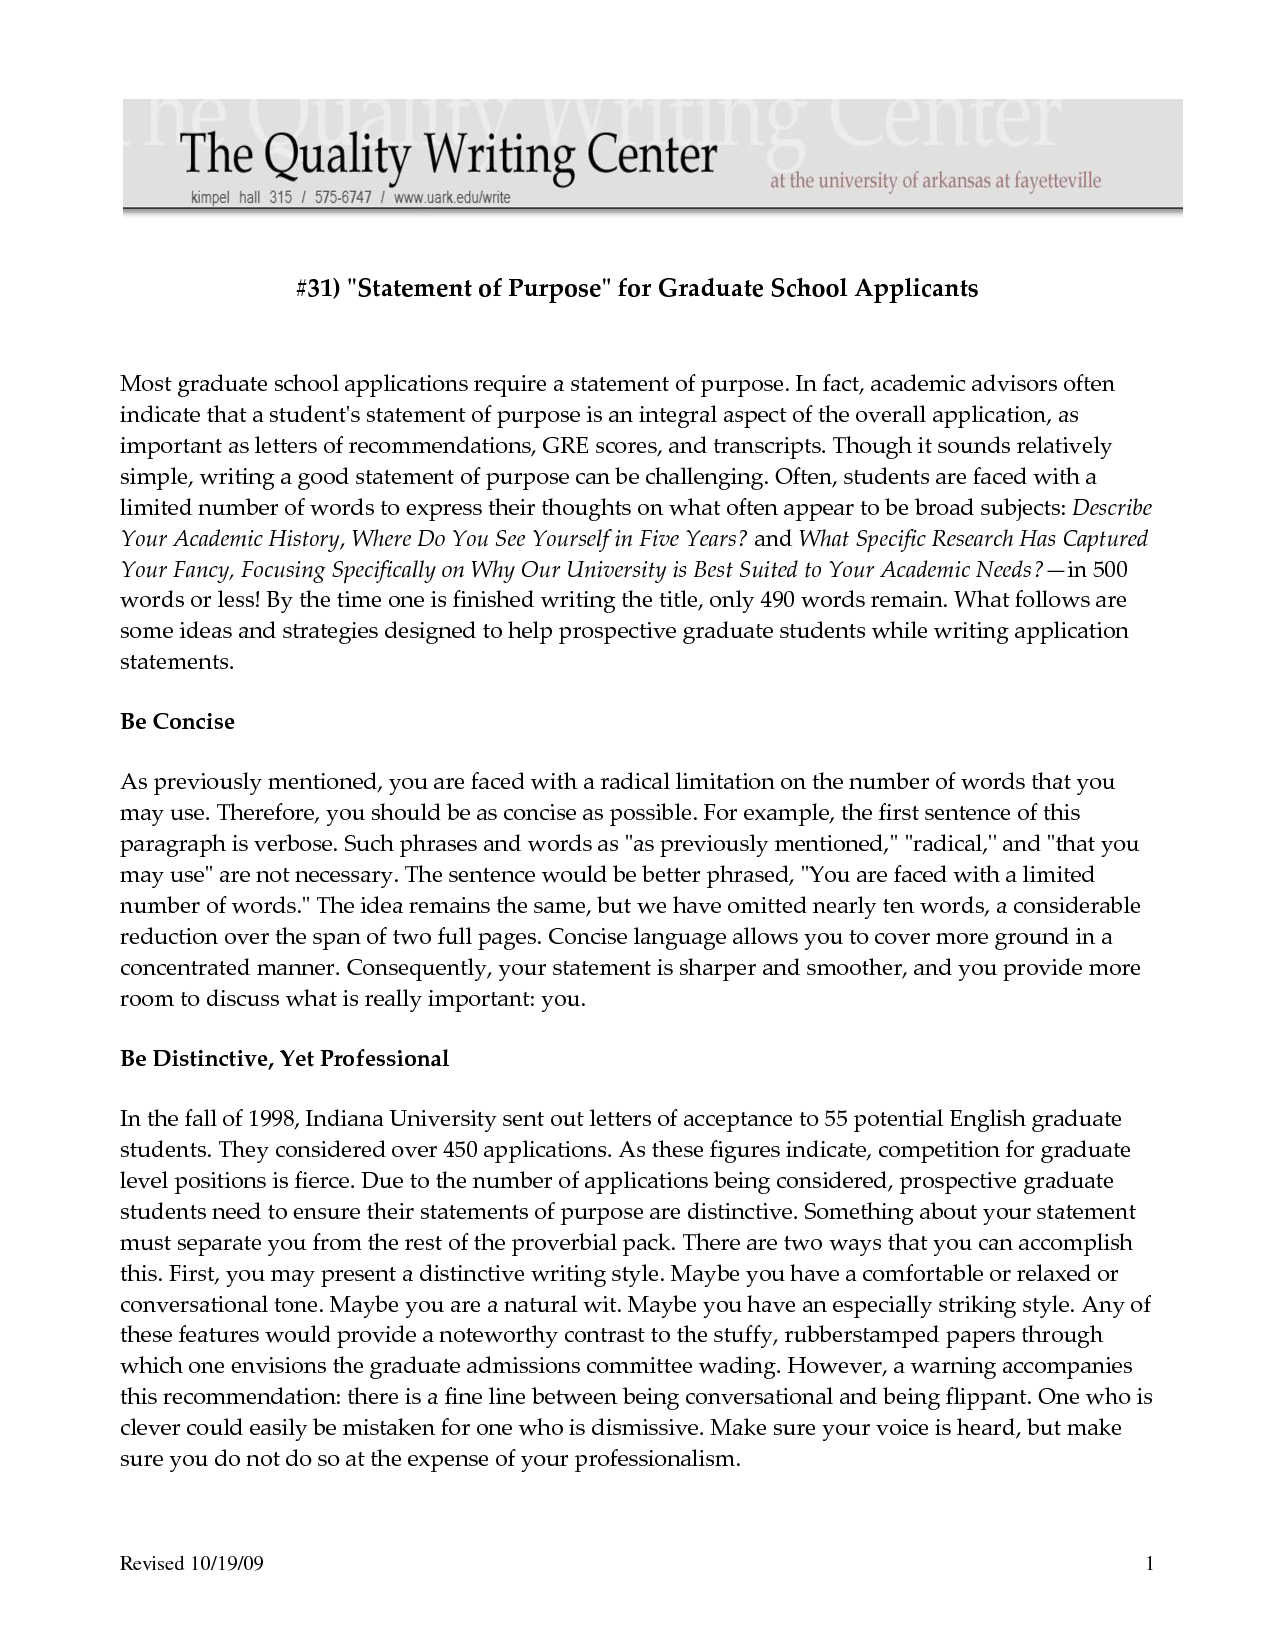 009 Personal Statement For Graduate School Sample Essays Essay Wonderful Pdf Psychology Full